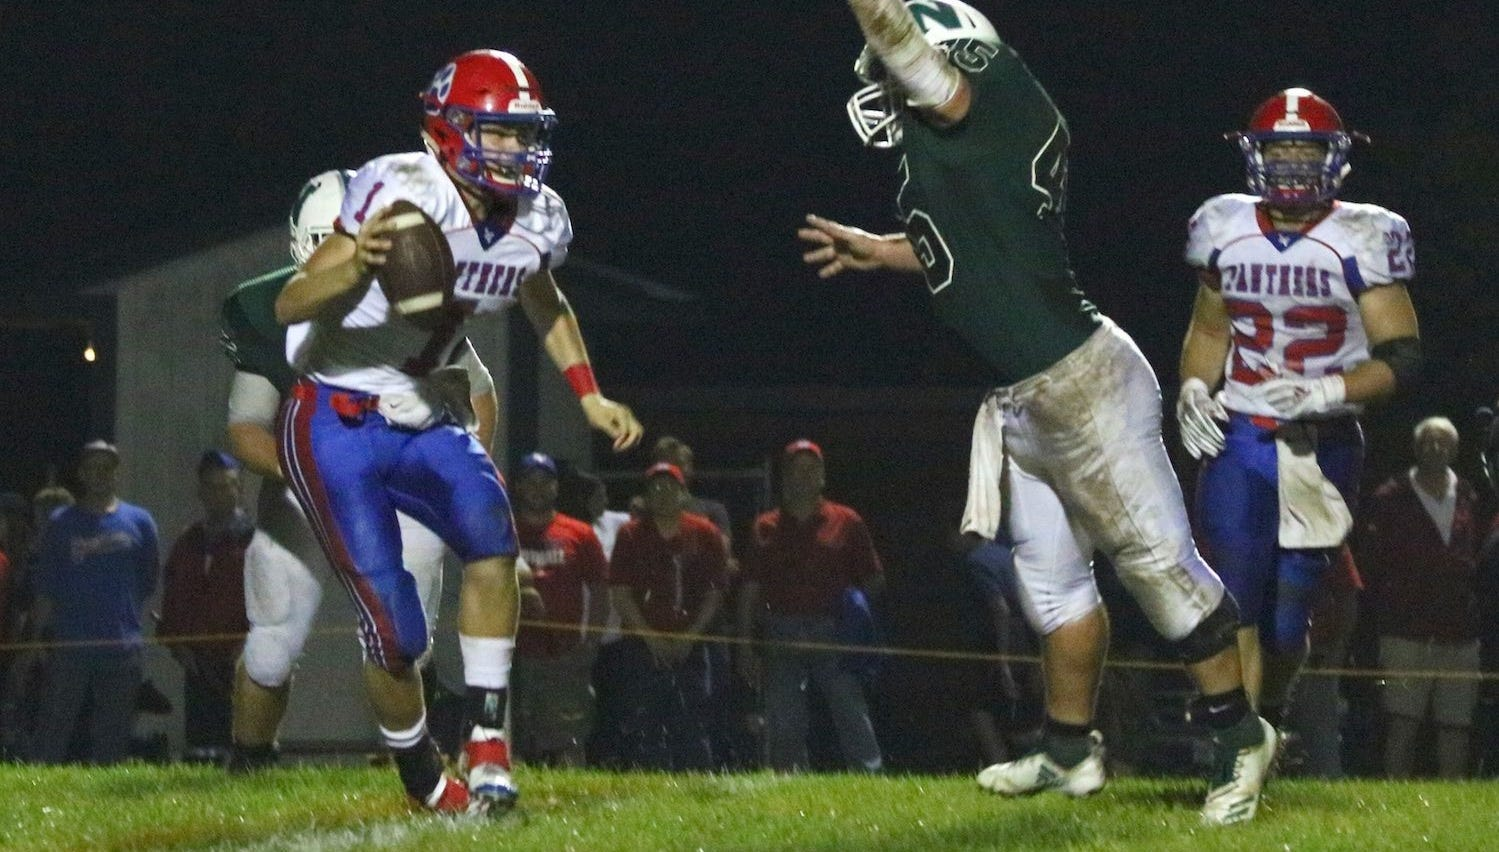 Well-balanced Licking Valley starting to crank up passing game